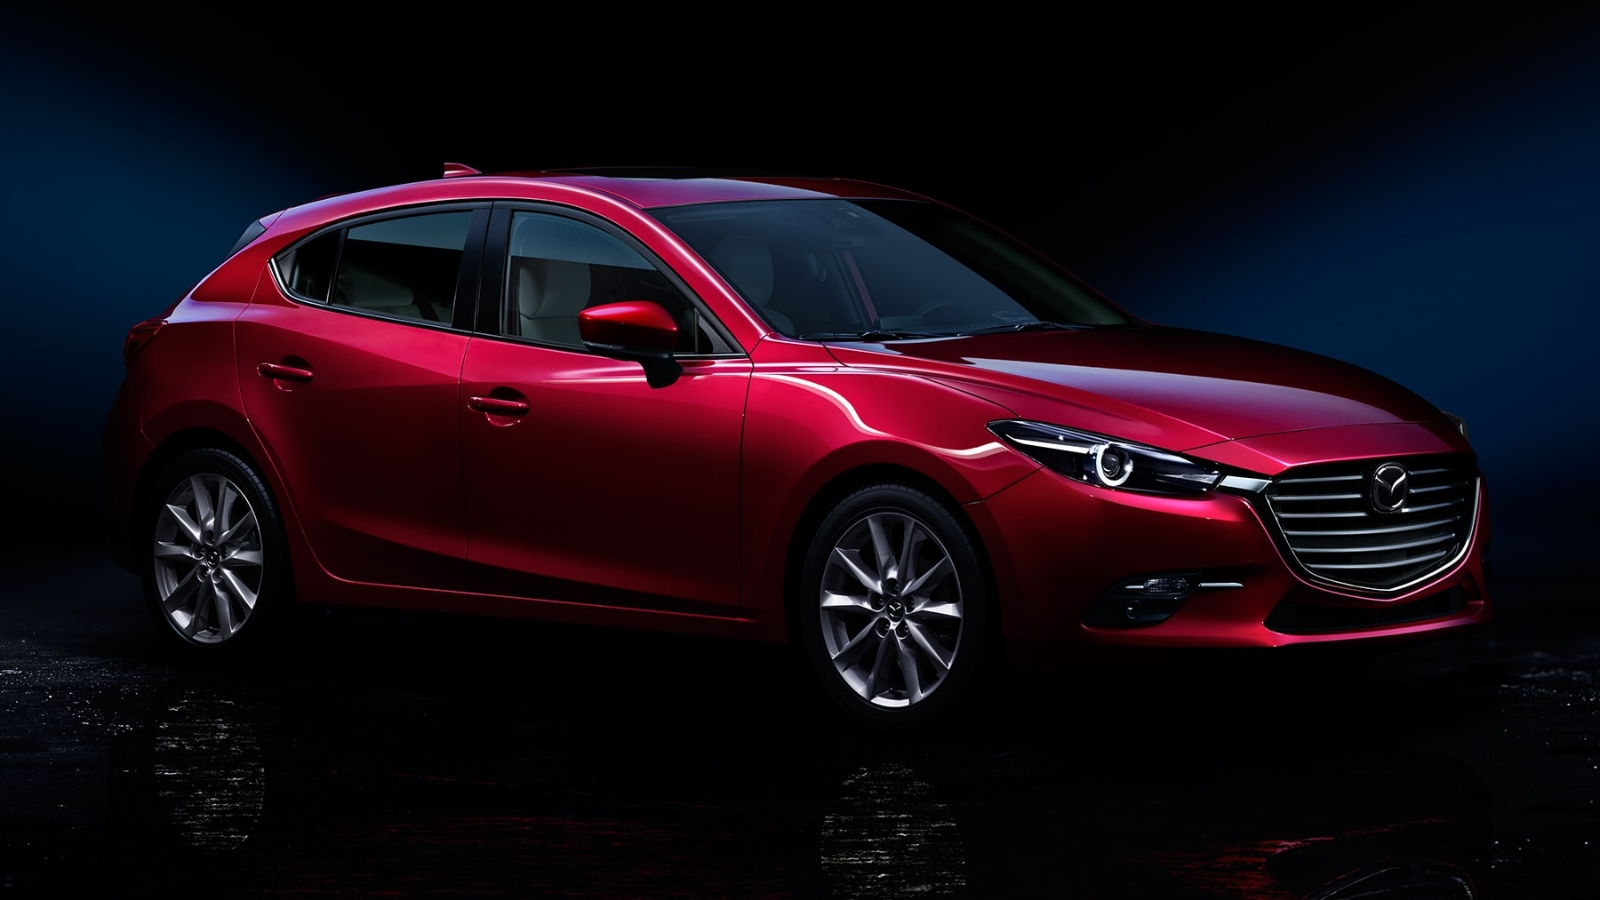 Drive Home In A Mazda With The Mazda College Graduate Program - Mazda graduate program